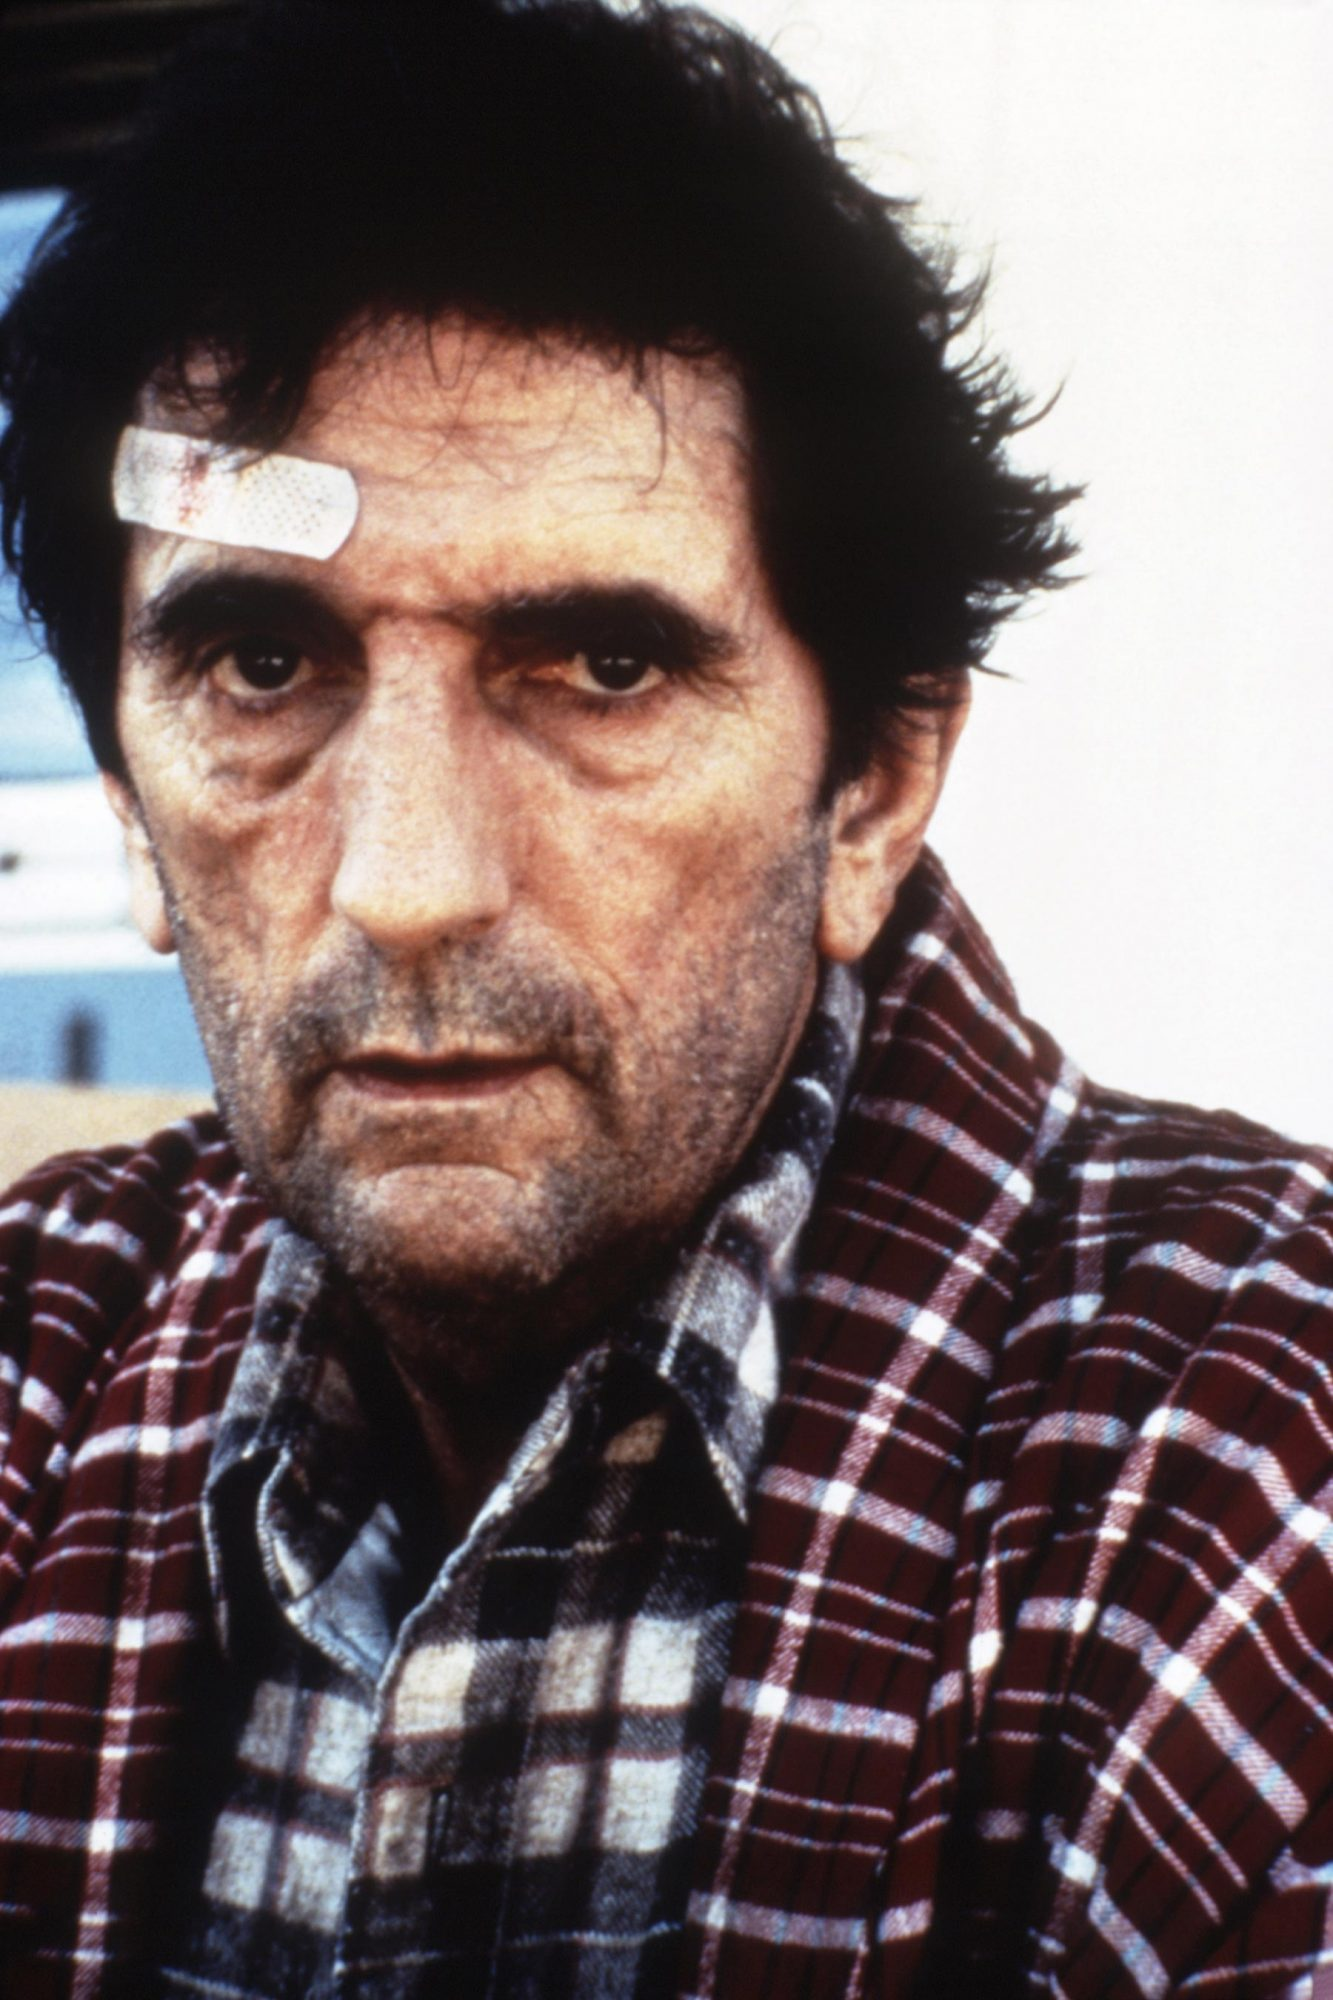 Harry Dean Stanton in 1992's Twin Peaks: Fire Walk with Me